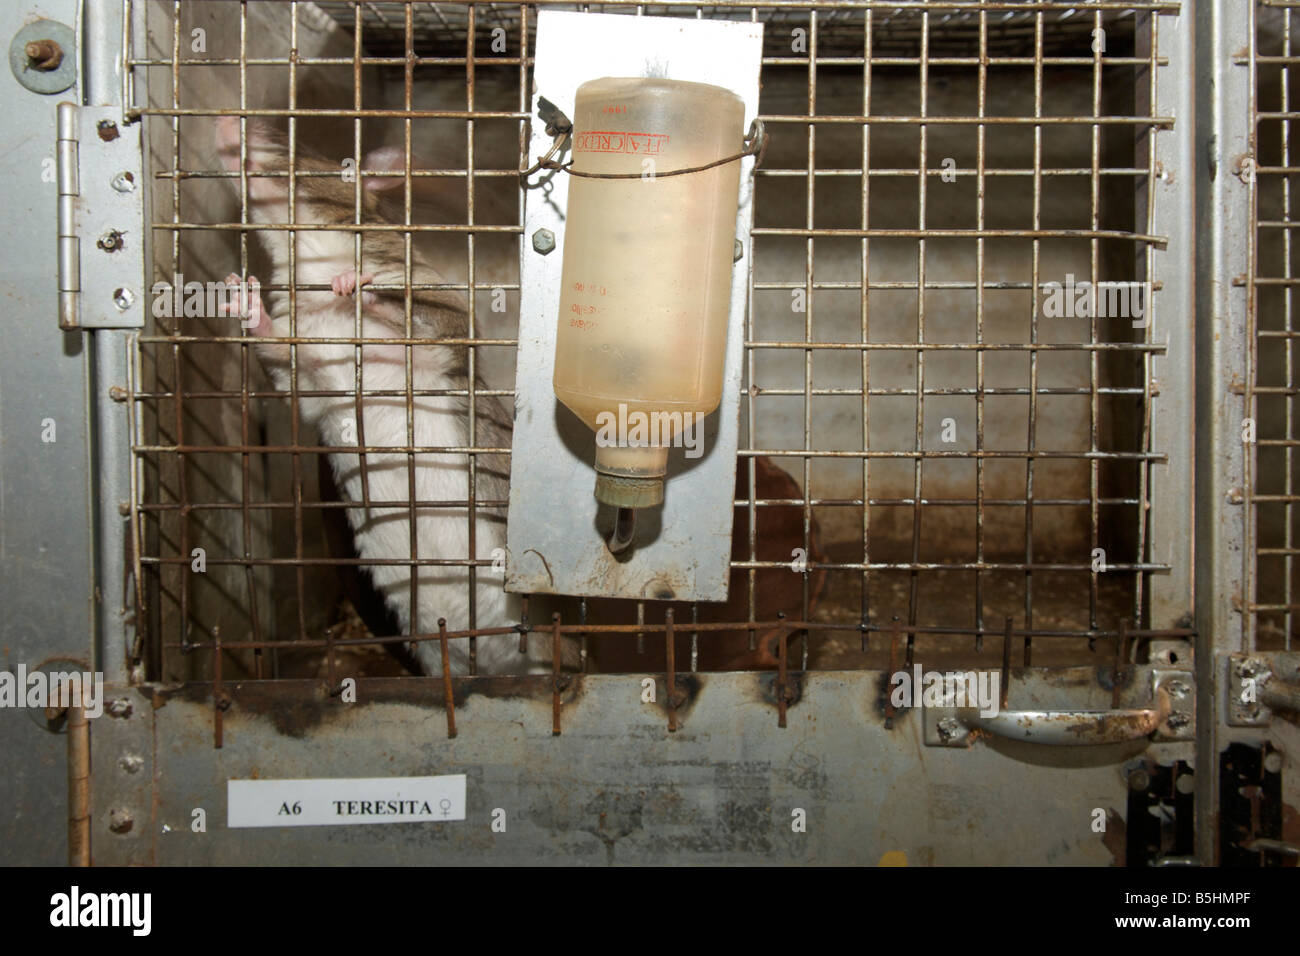 Rat in its cage at the APOPO offices on the campus of the University of Sokoine in Morogoro, Tanzania. - Stock Image